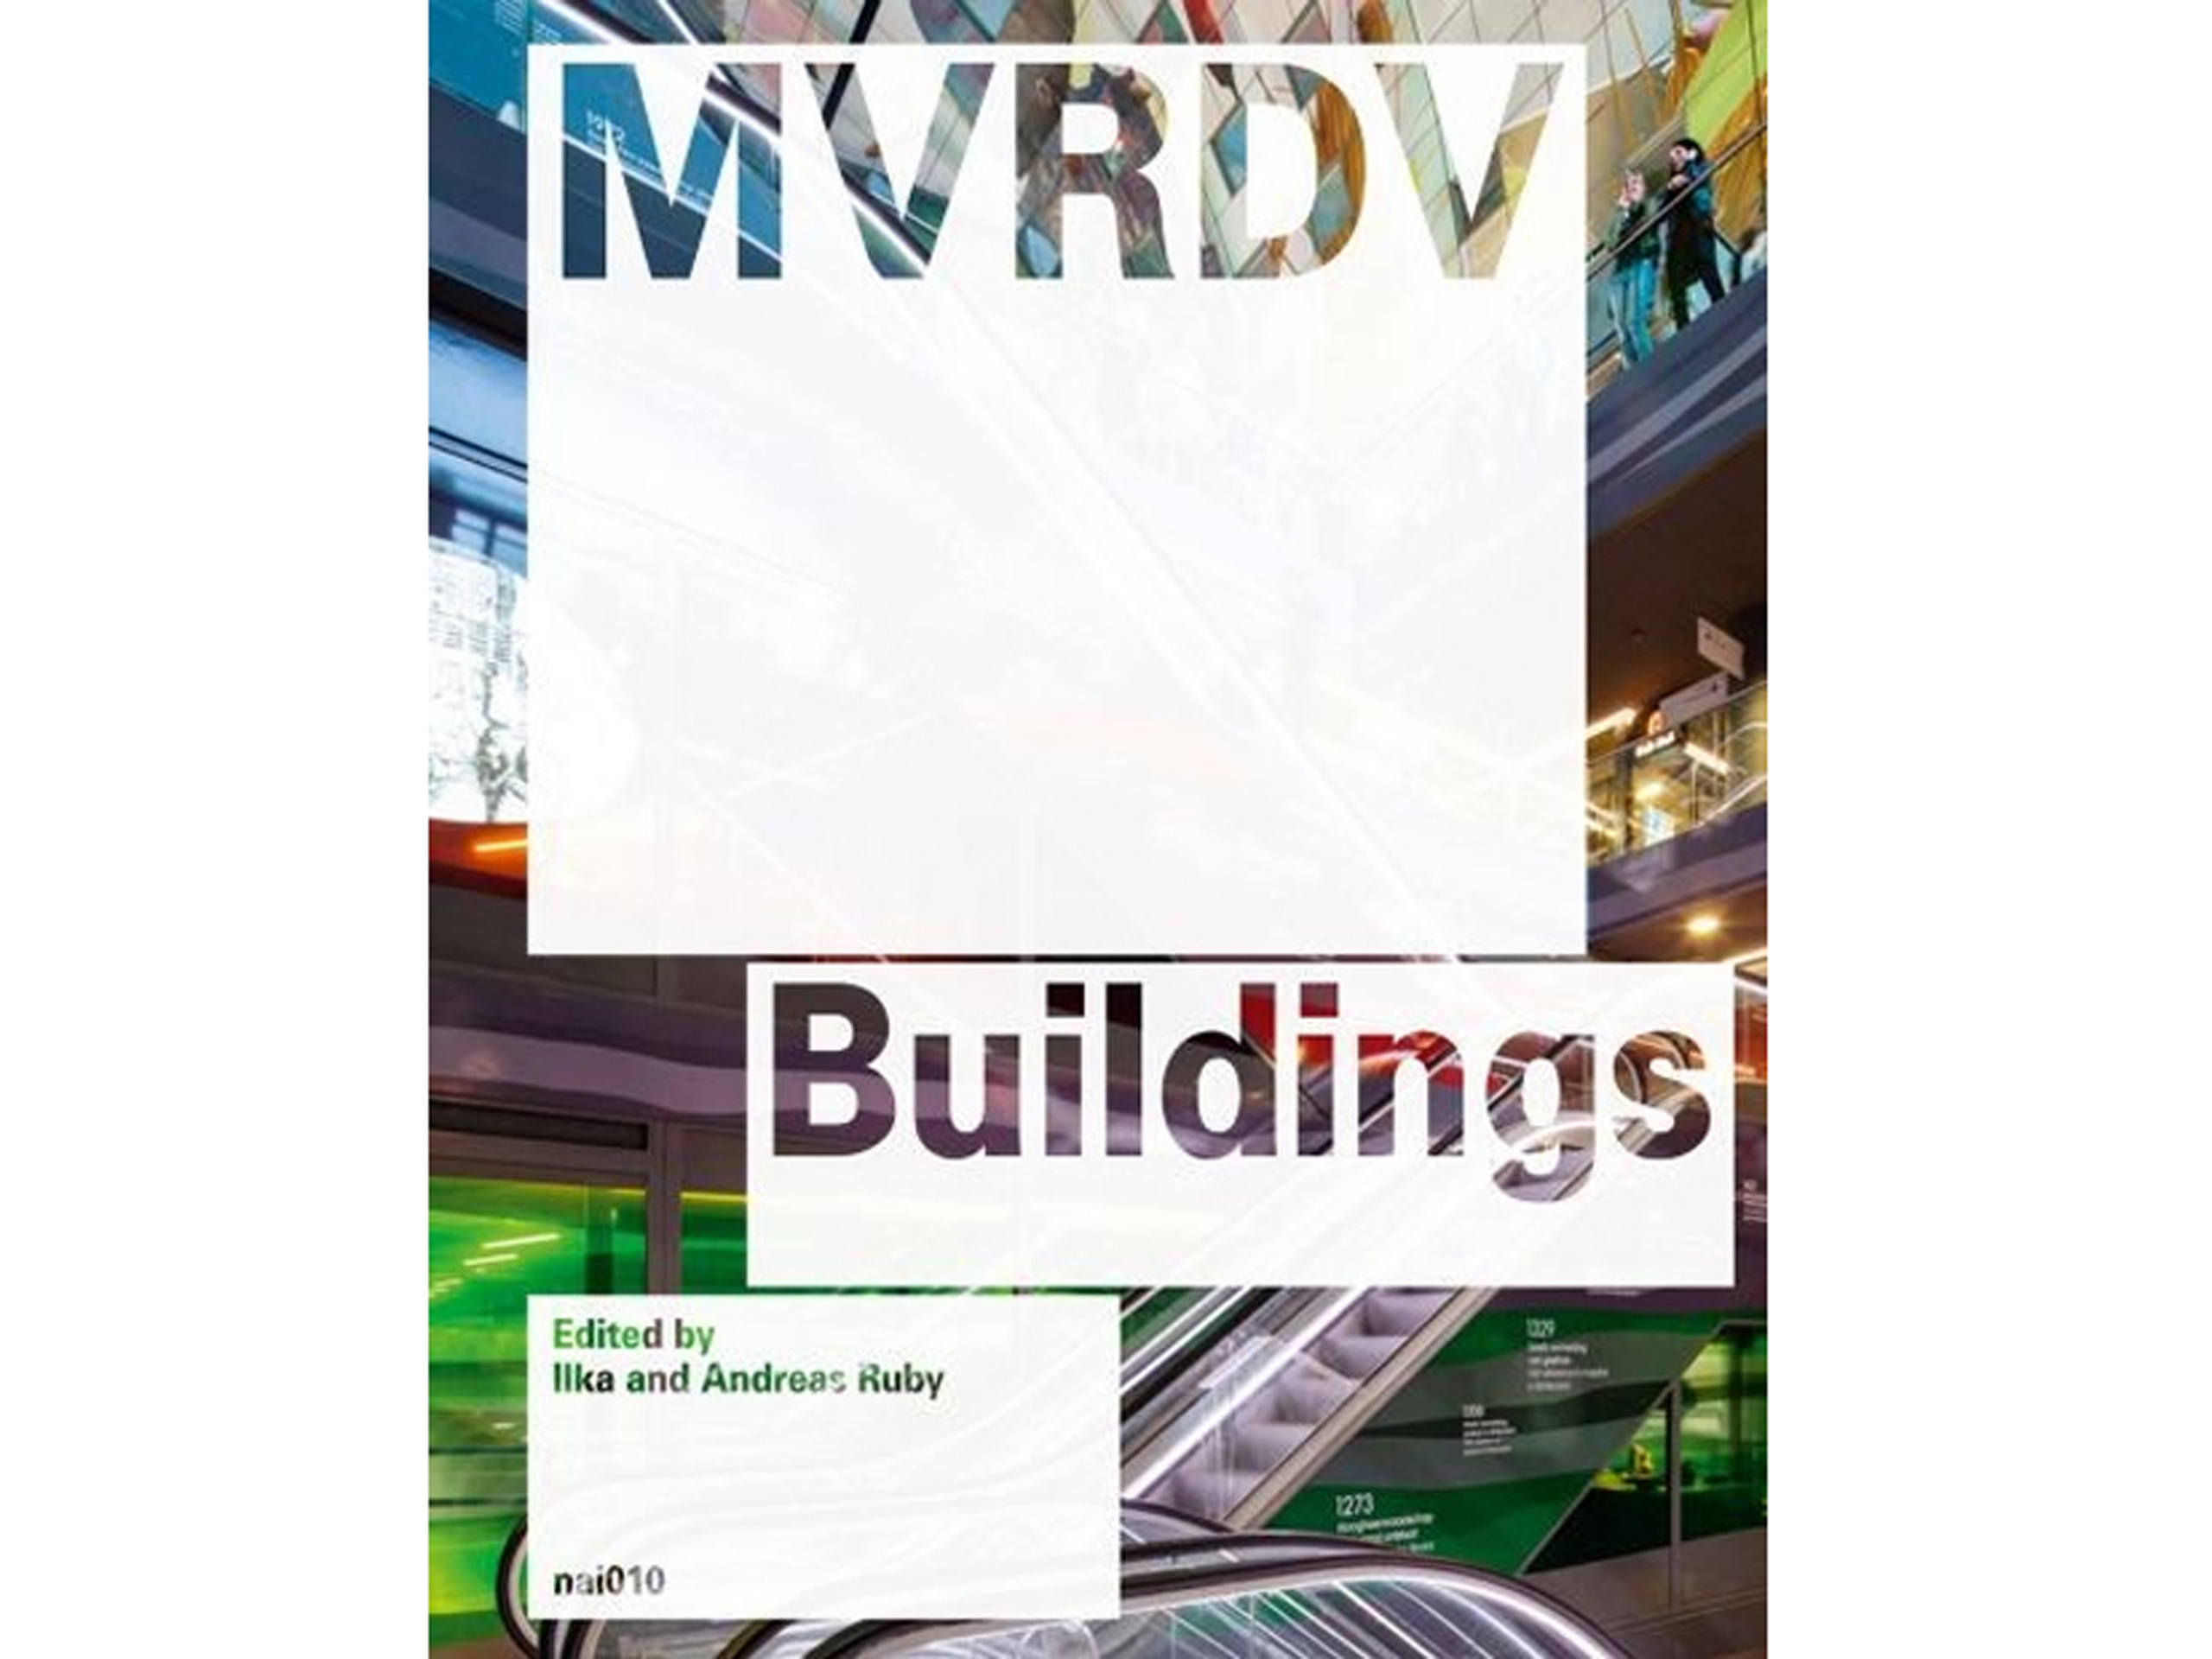 MVRDV Buildings Updated Edition